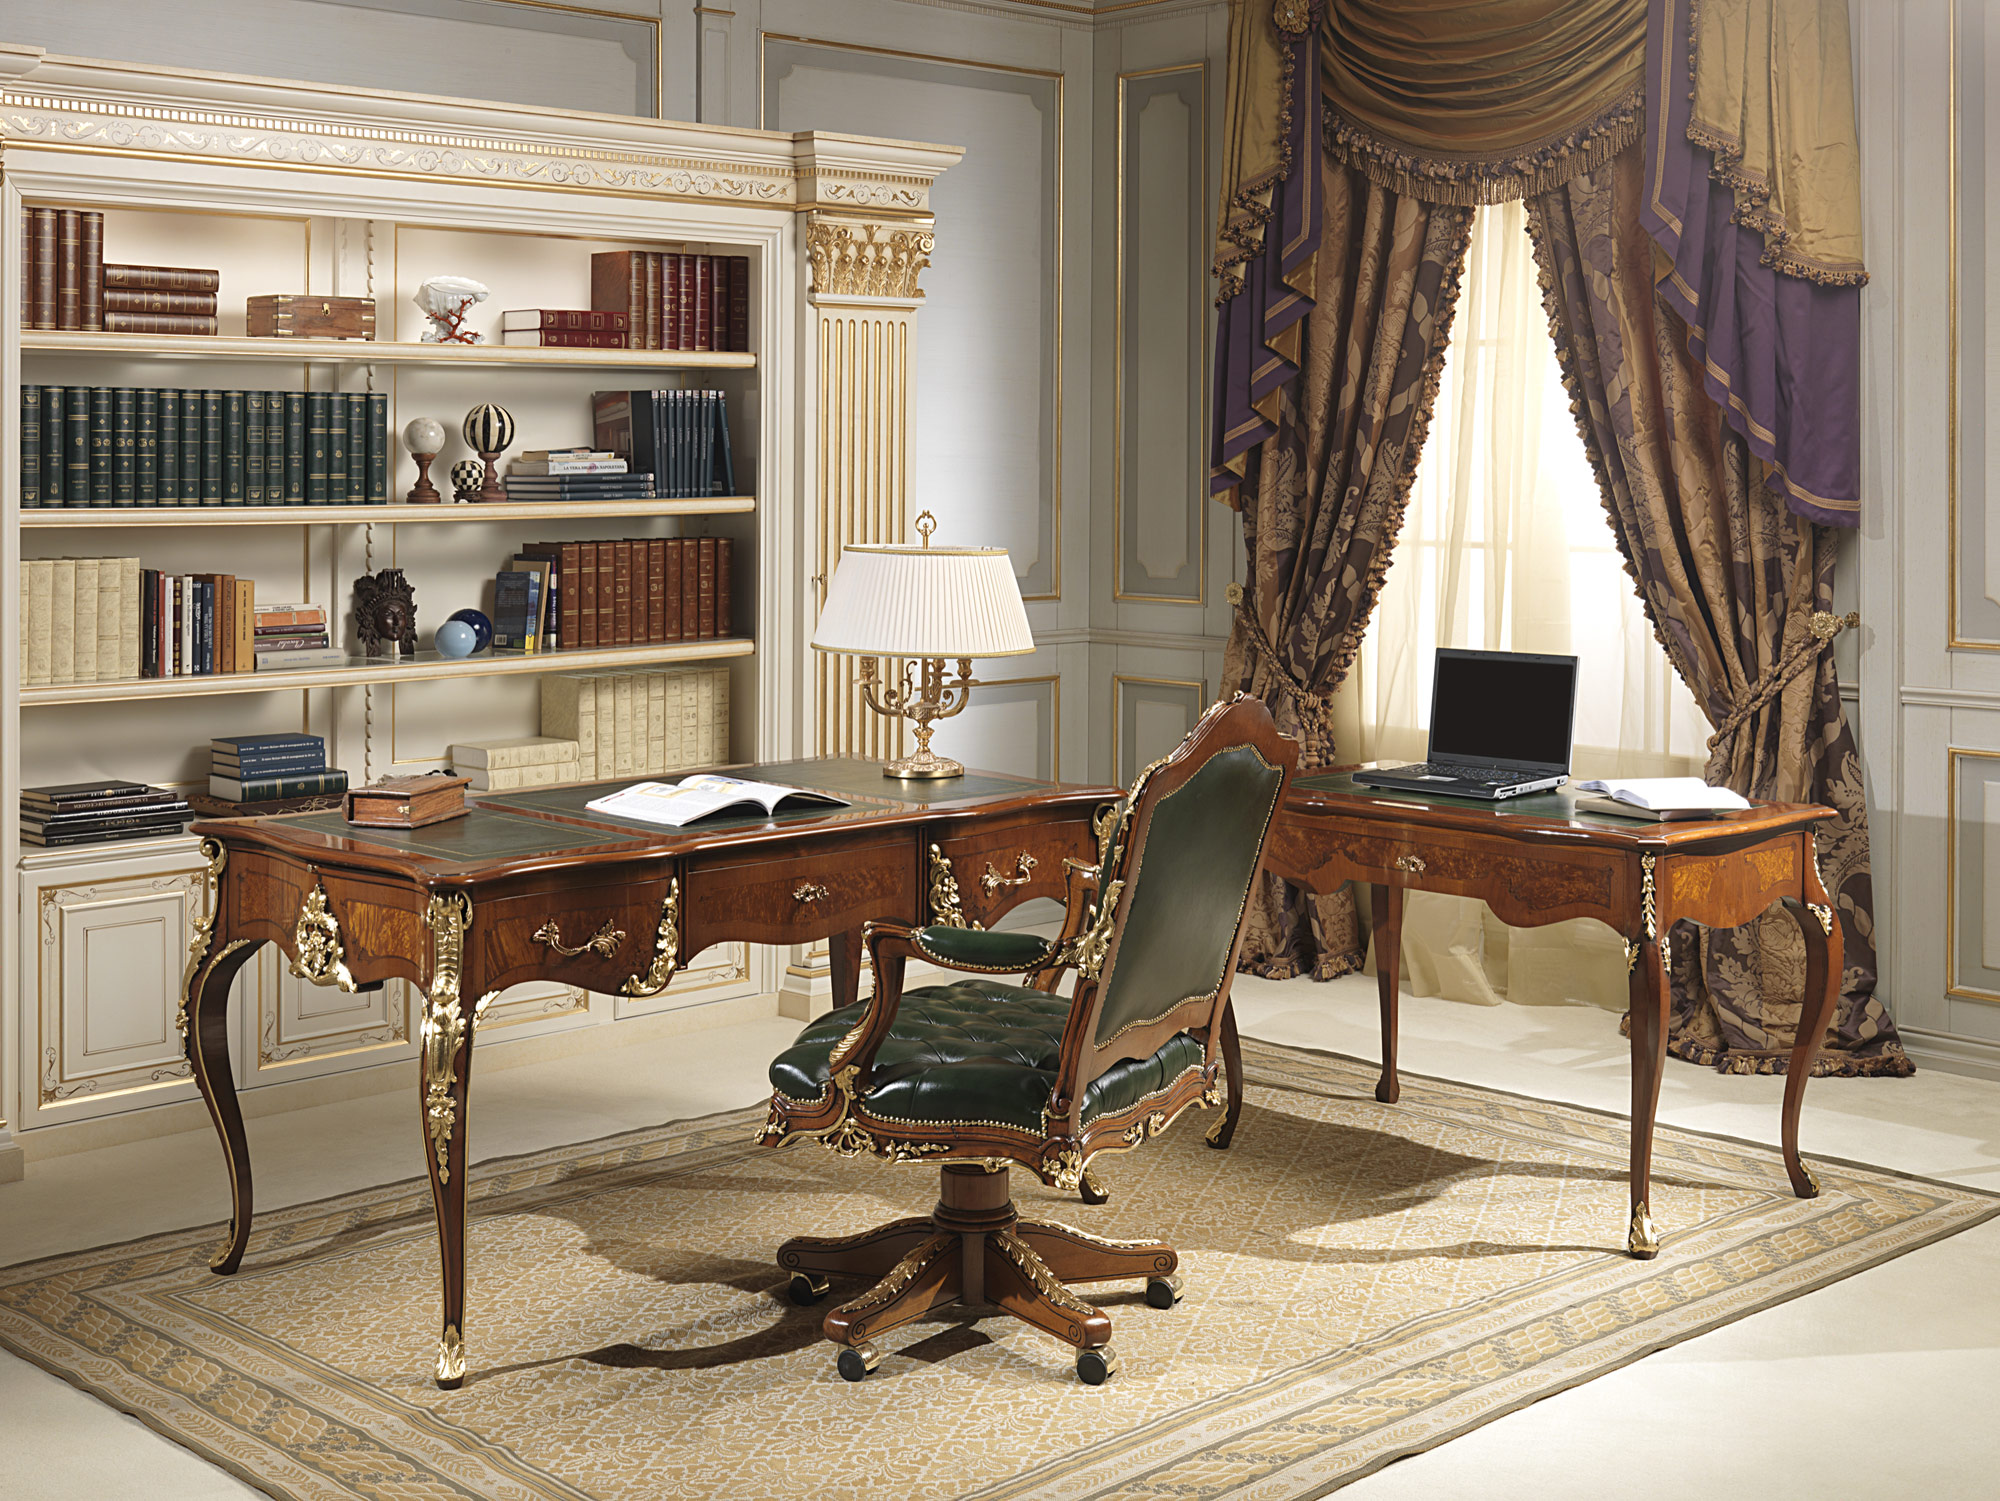 Luxury office furniture in classic style for Classic design furniture